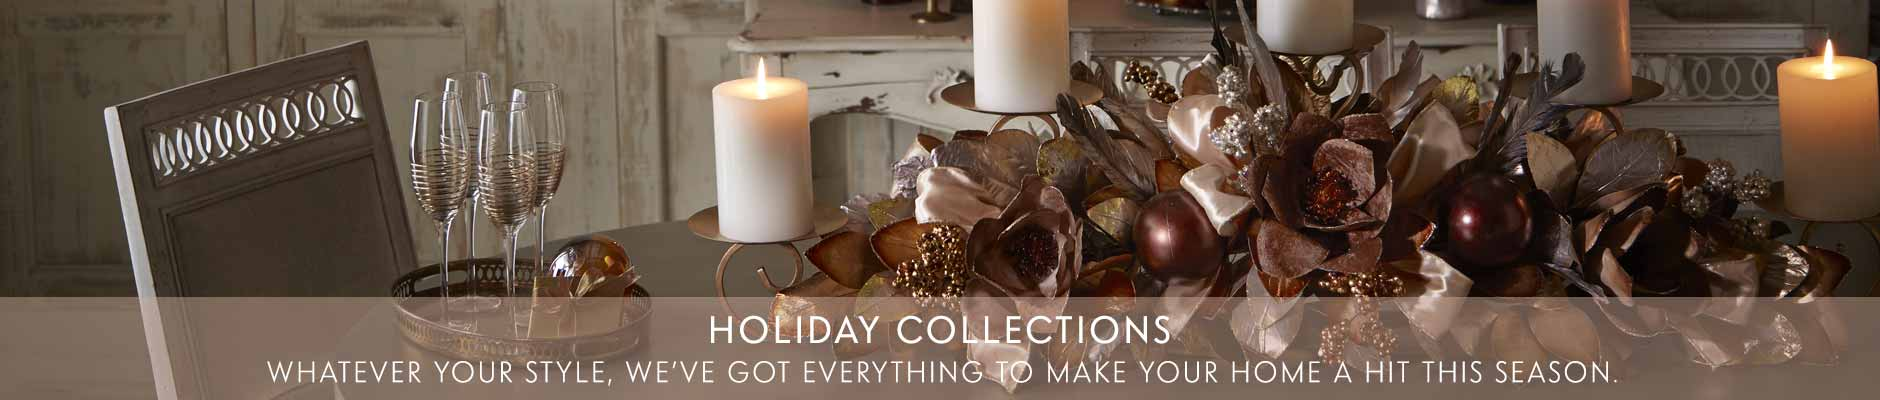 The Holiday Collections